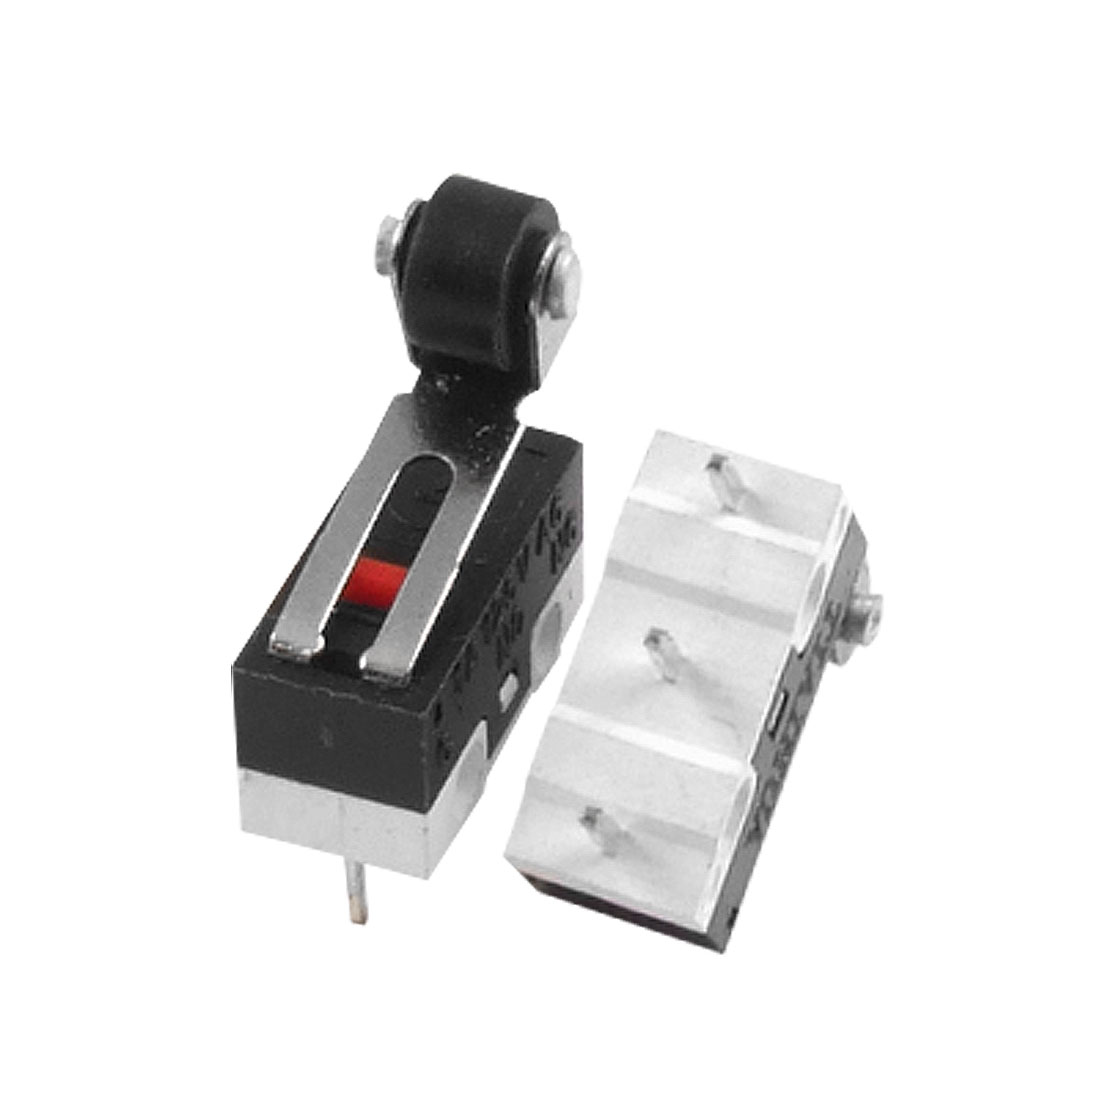 10-Pcs-1NO-1NC-Momentary-SPDT-Hinge-Roller-Lever-Micro-Switches-3-Pin-AC-125V-1A